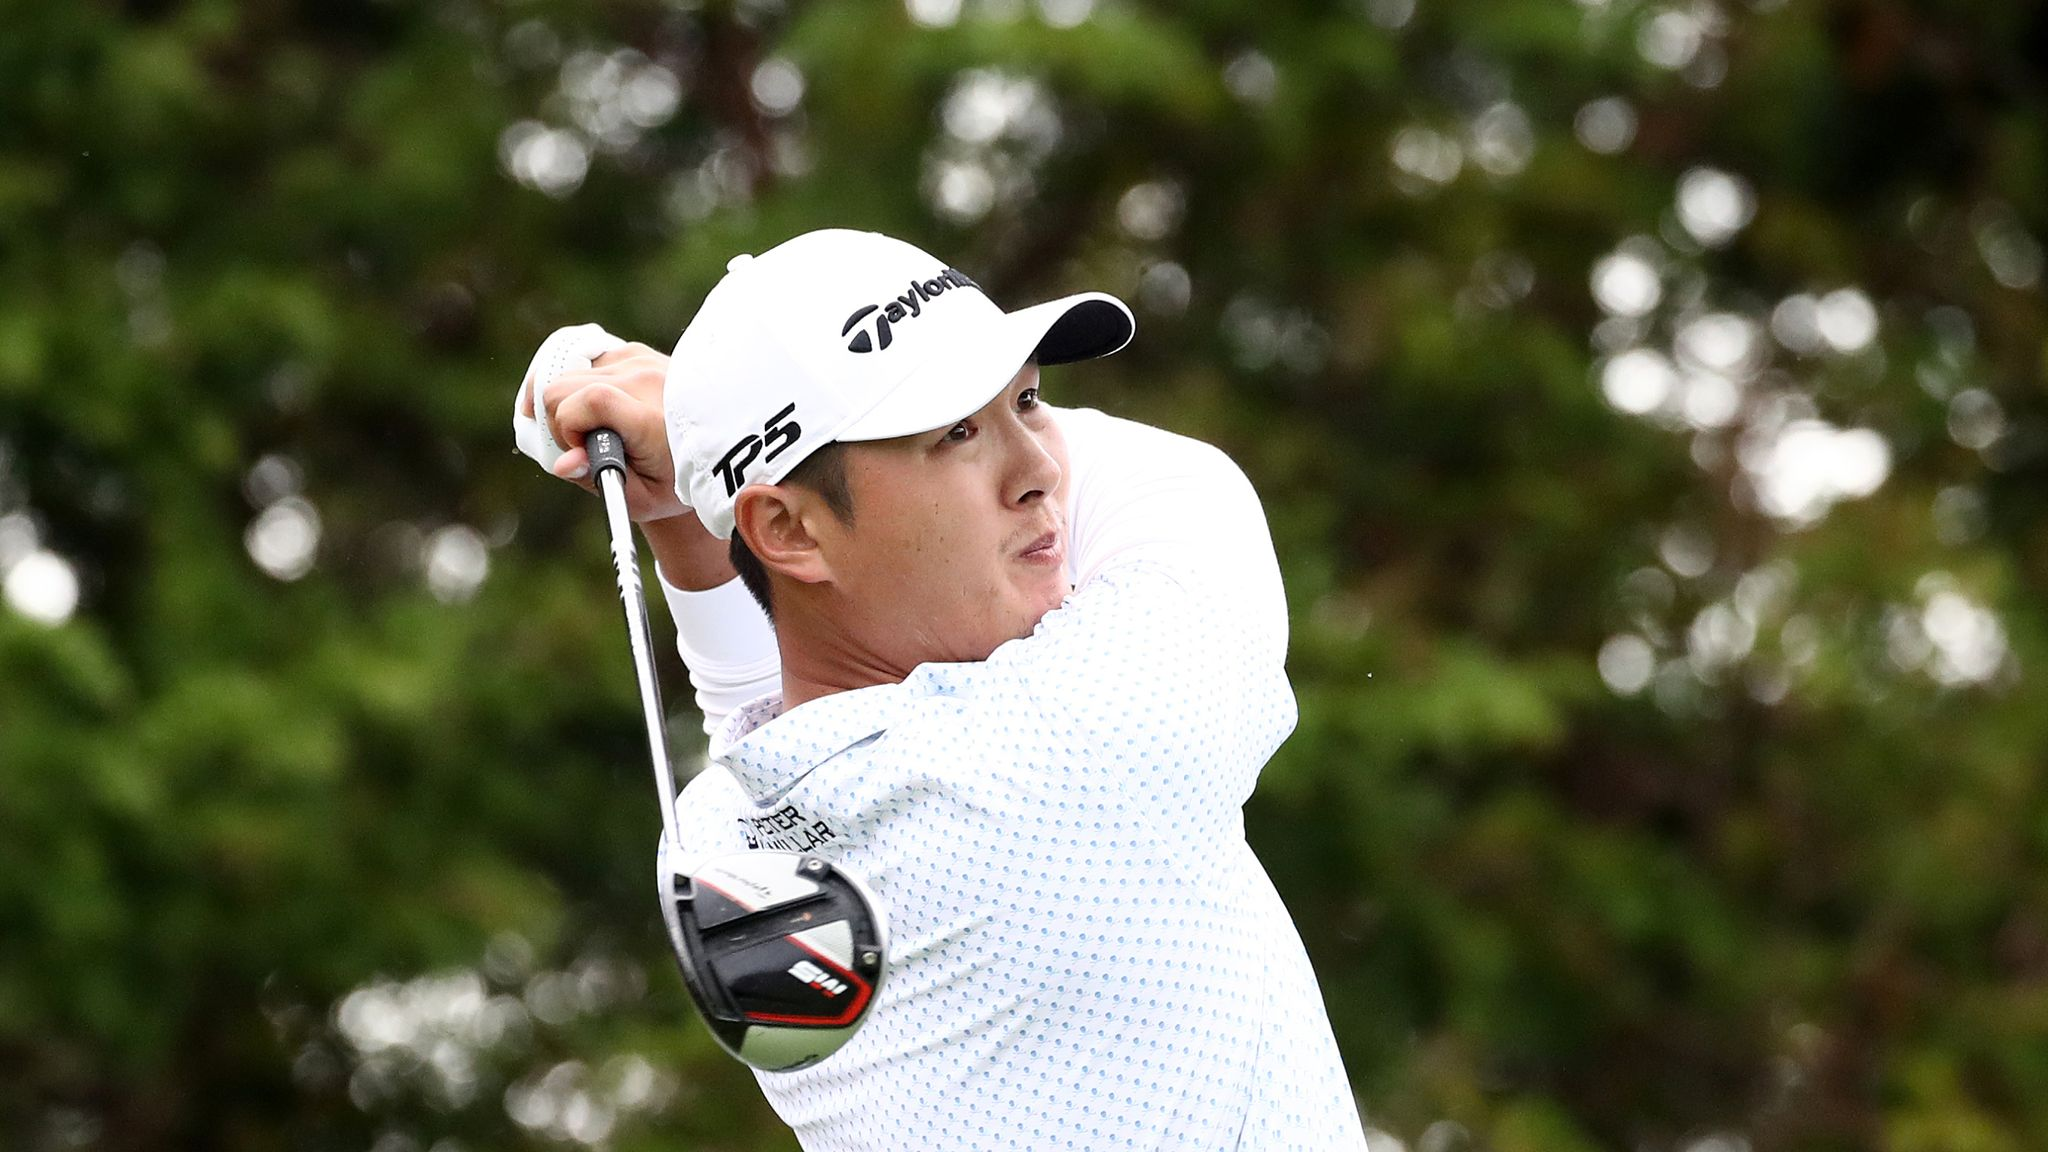 Justin Thomas takes two-shot lead into weekend of CJ Cup in Korea